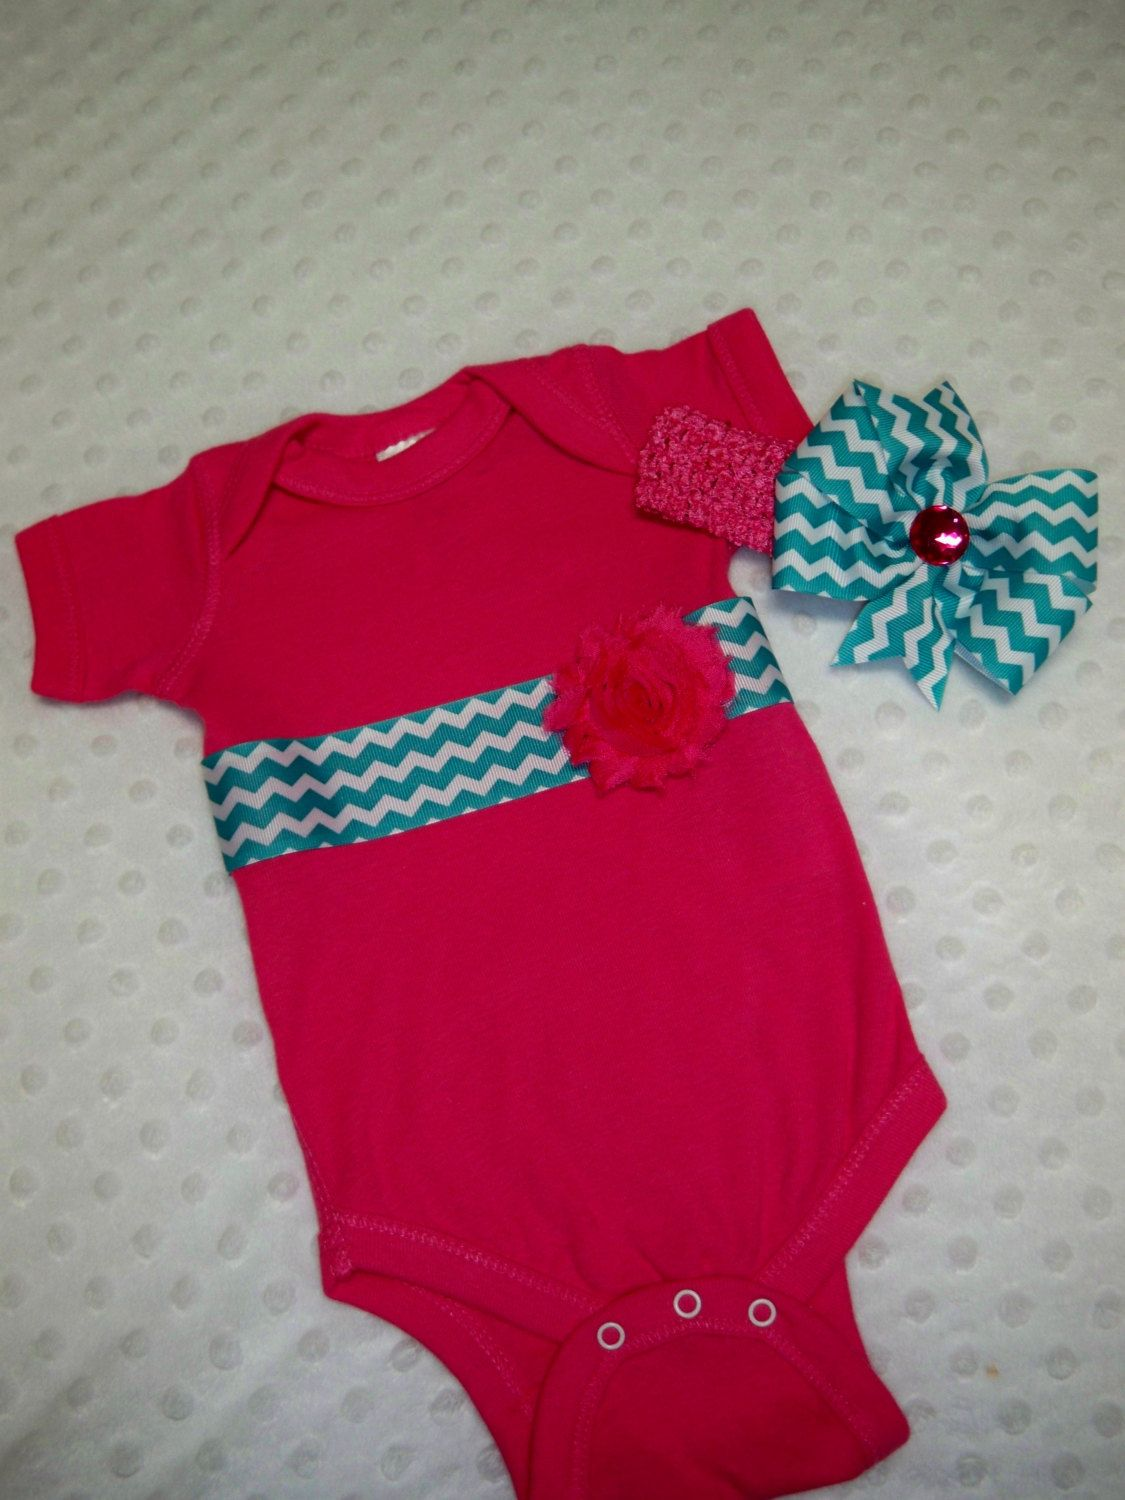 Hot+Pink+and+Teal+Chevron+Baby+Girl+by+grinsandgigglesbaby1,+$17.99